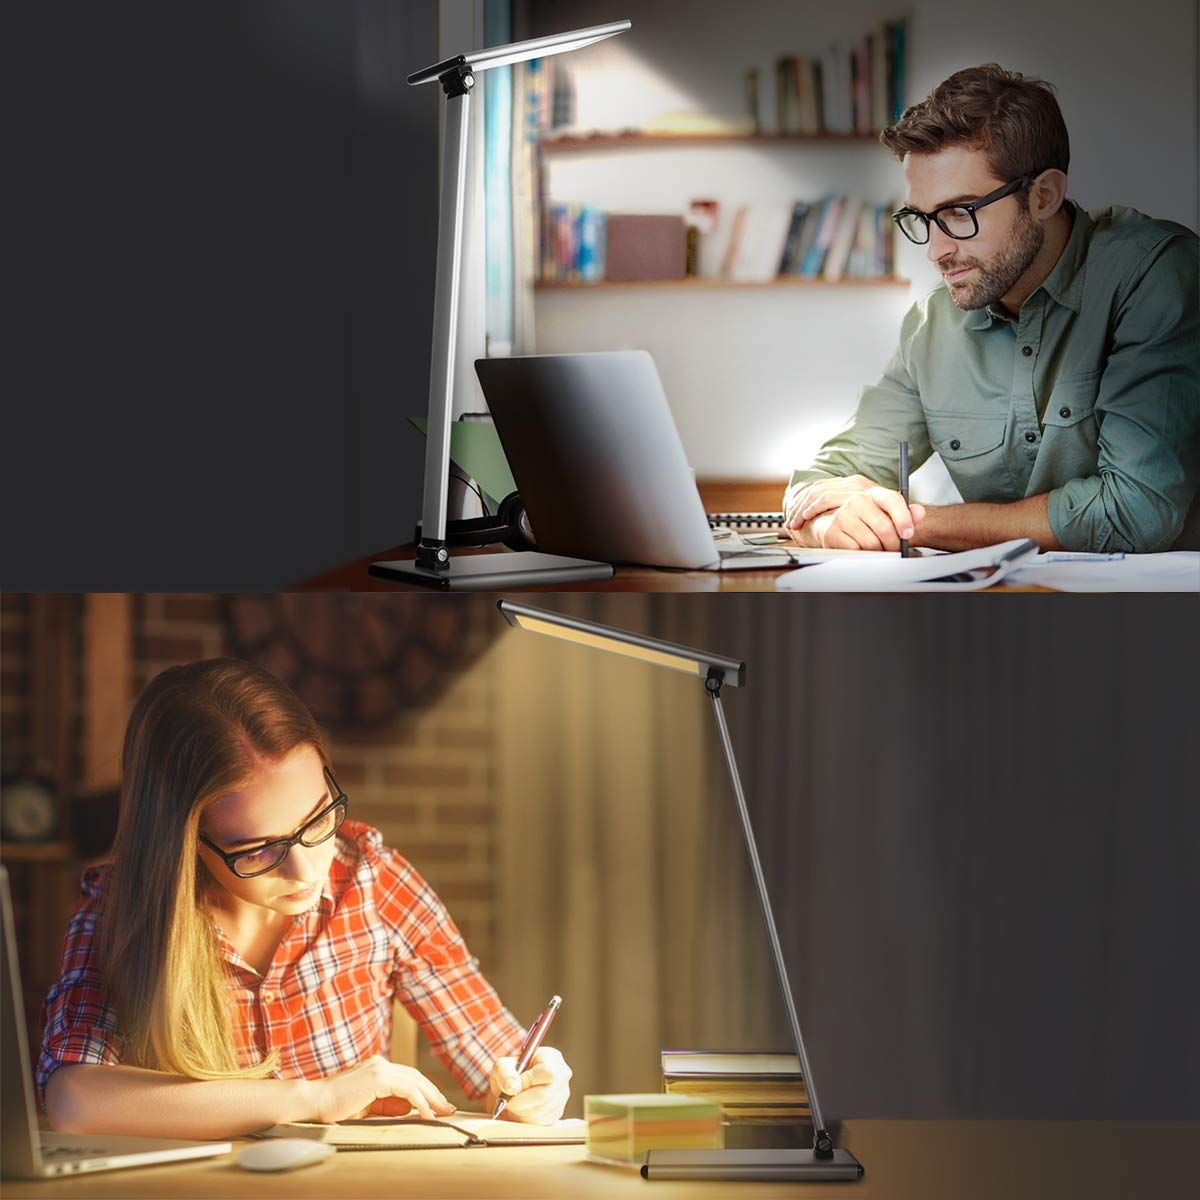 LED Desk Lamp - Aluminum Alloy Dimmable Table Lamps, Eye-Caring Office Lighting Study Lamp with Full Touch Control, Stepless Dimming and Faster USB Charging Port, 72 Non-Flicking LED Beads, Efficient